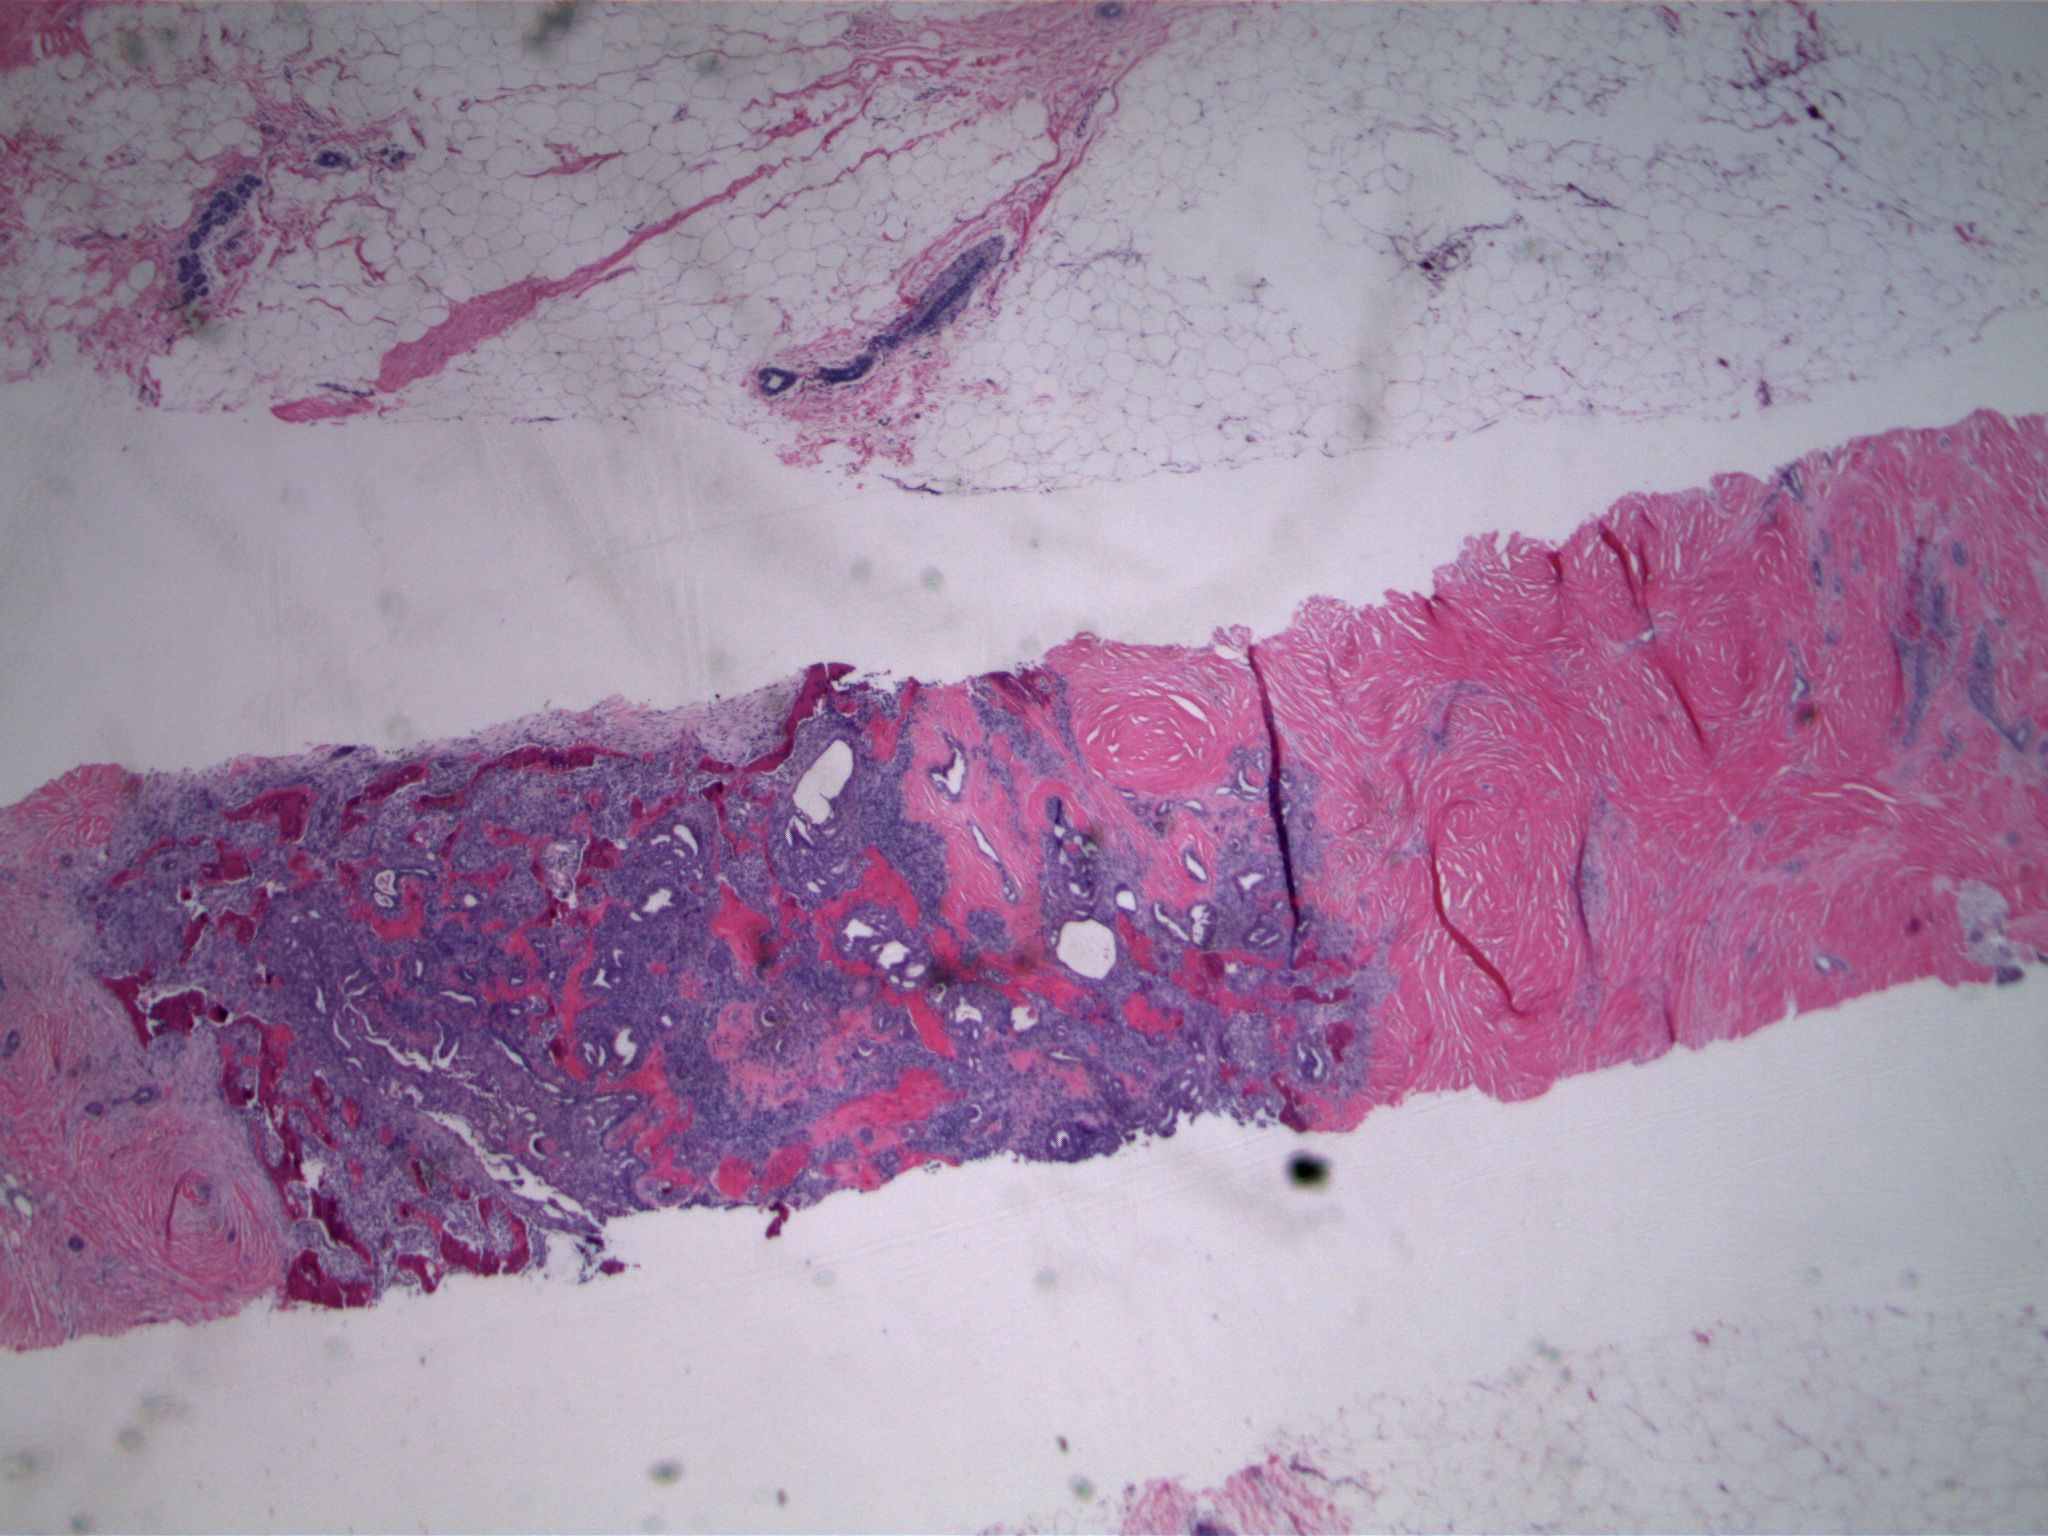 Image 1. Exuberant epithelial proliferation is associated with dense sclerosis (right) and ossification (left).